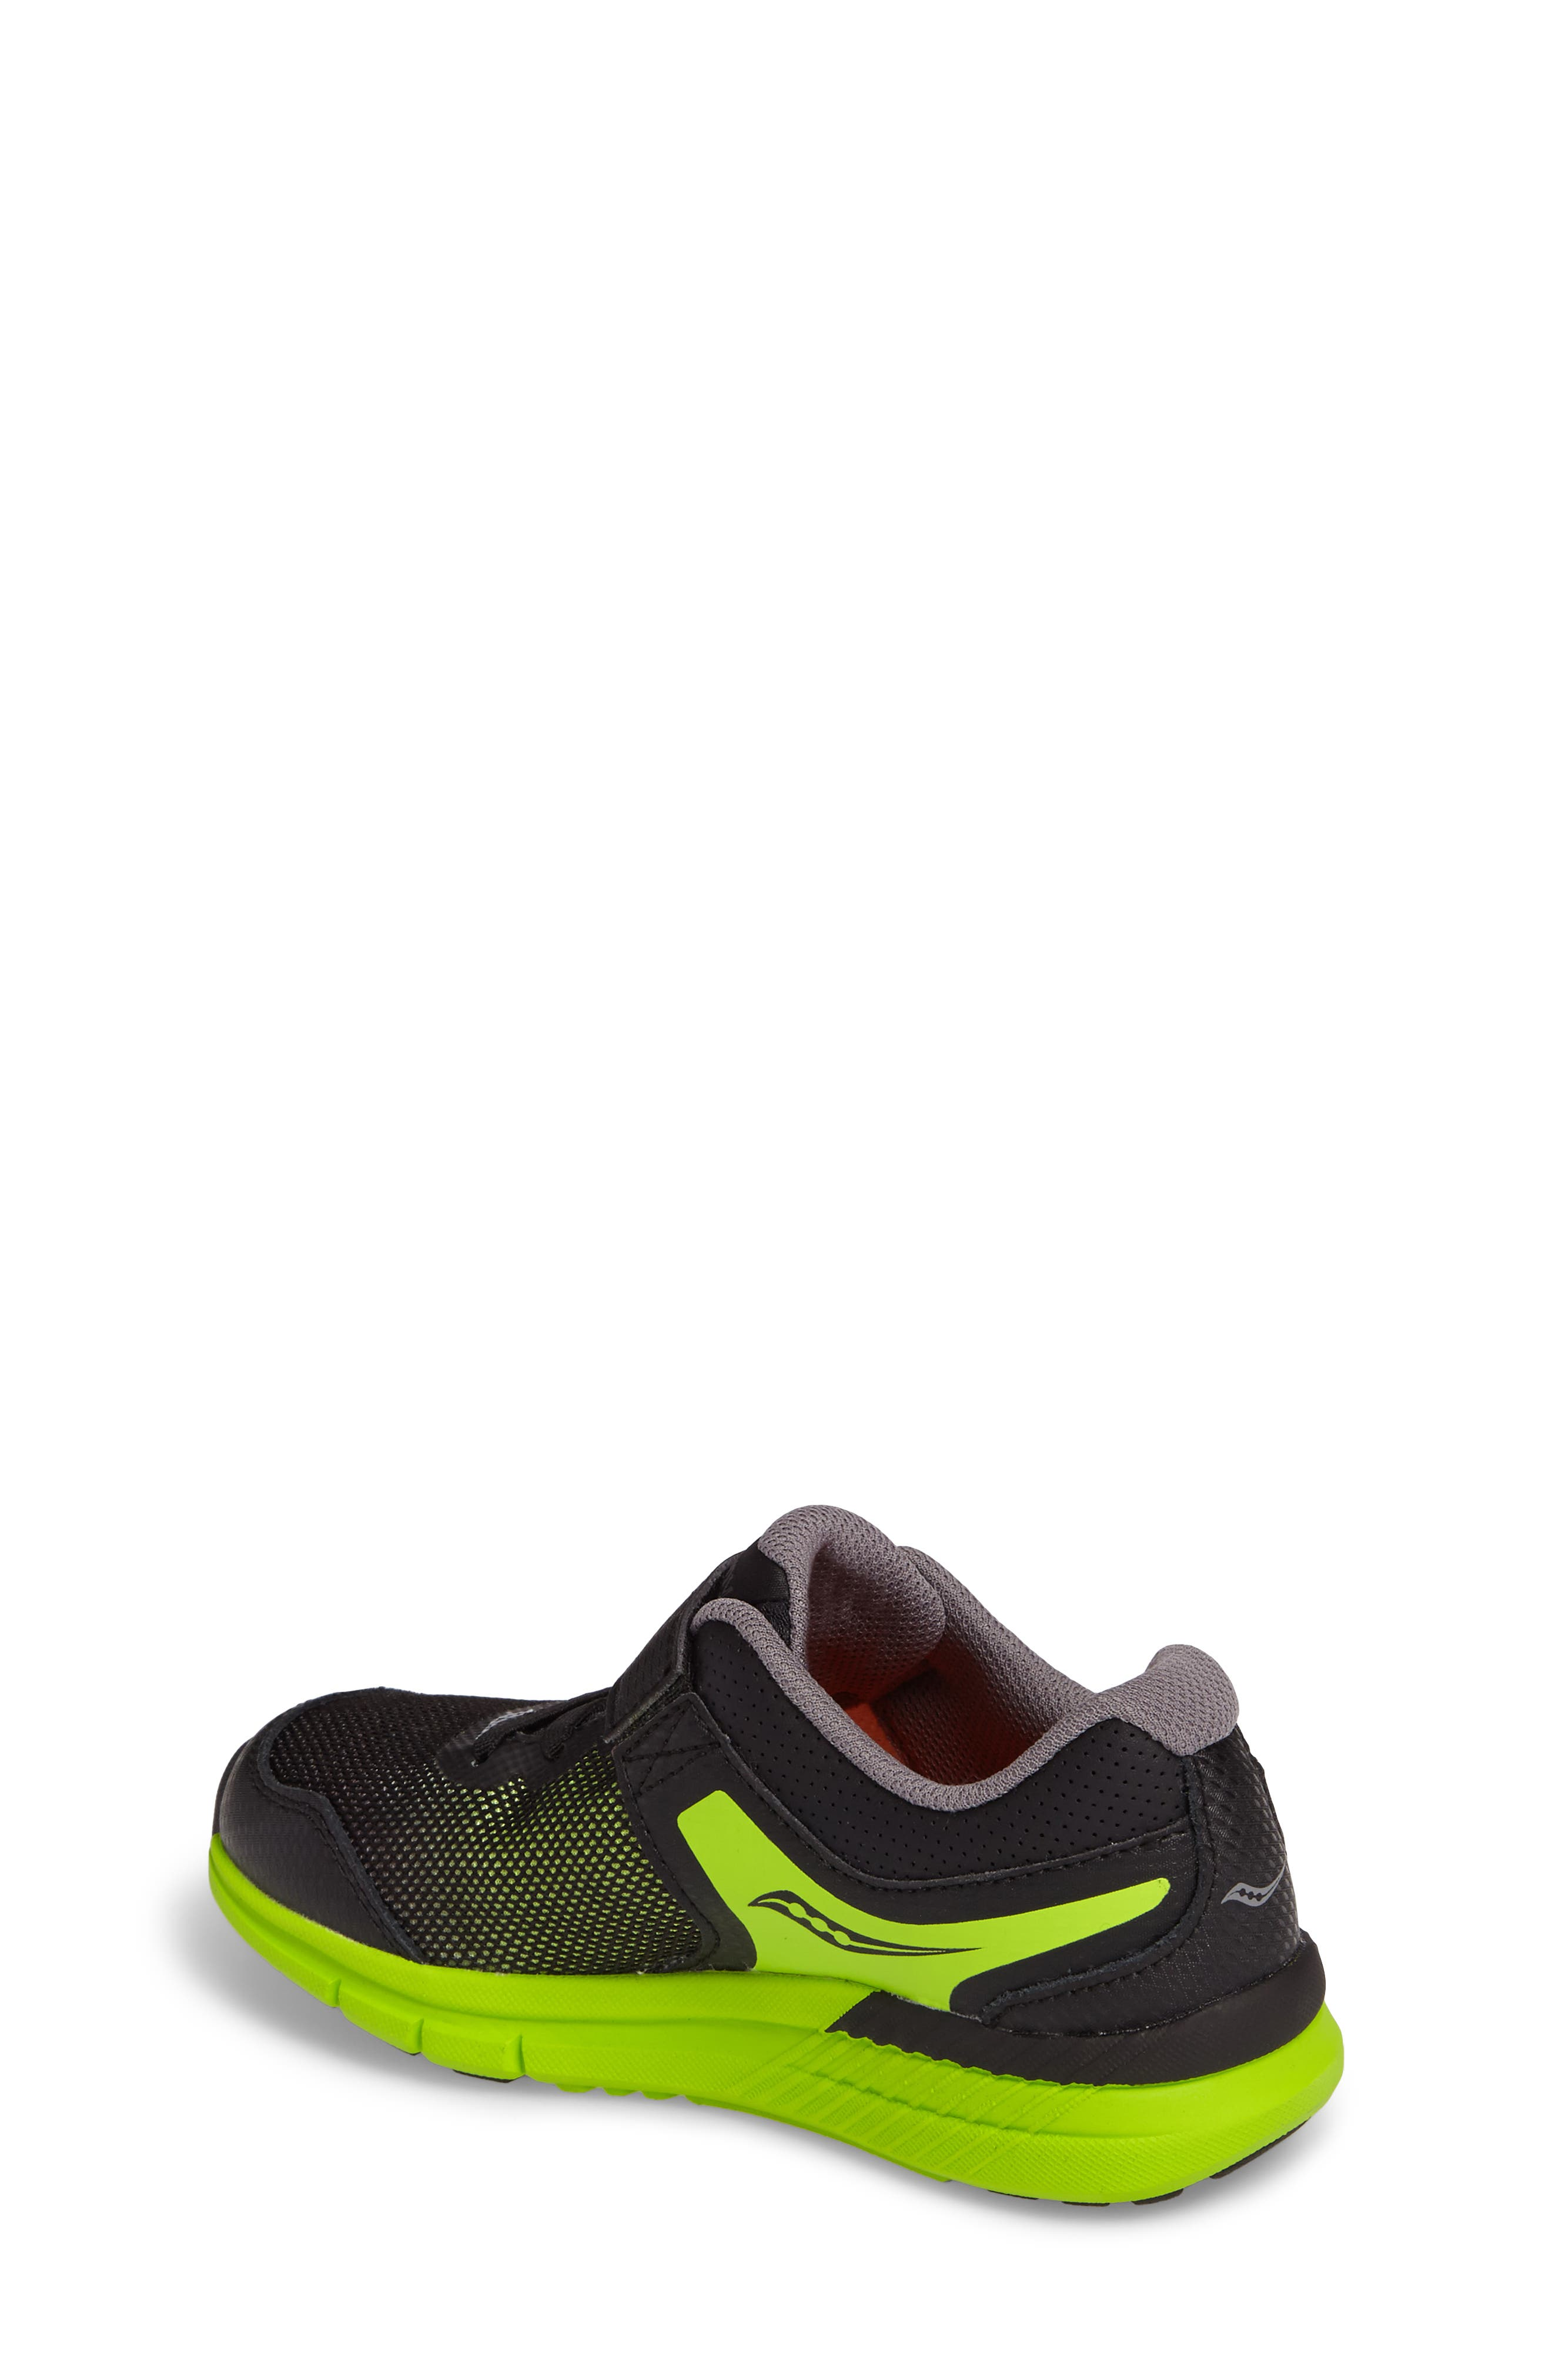 Velocity A/C Sneaker,                             Alternate thumbnail 2, color,                             Black/ Green